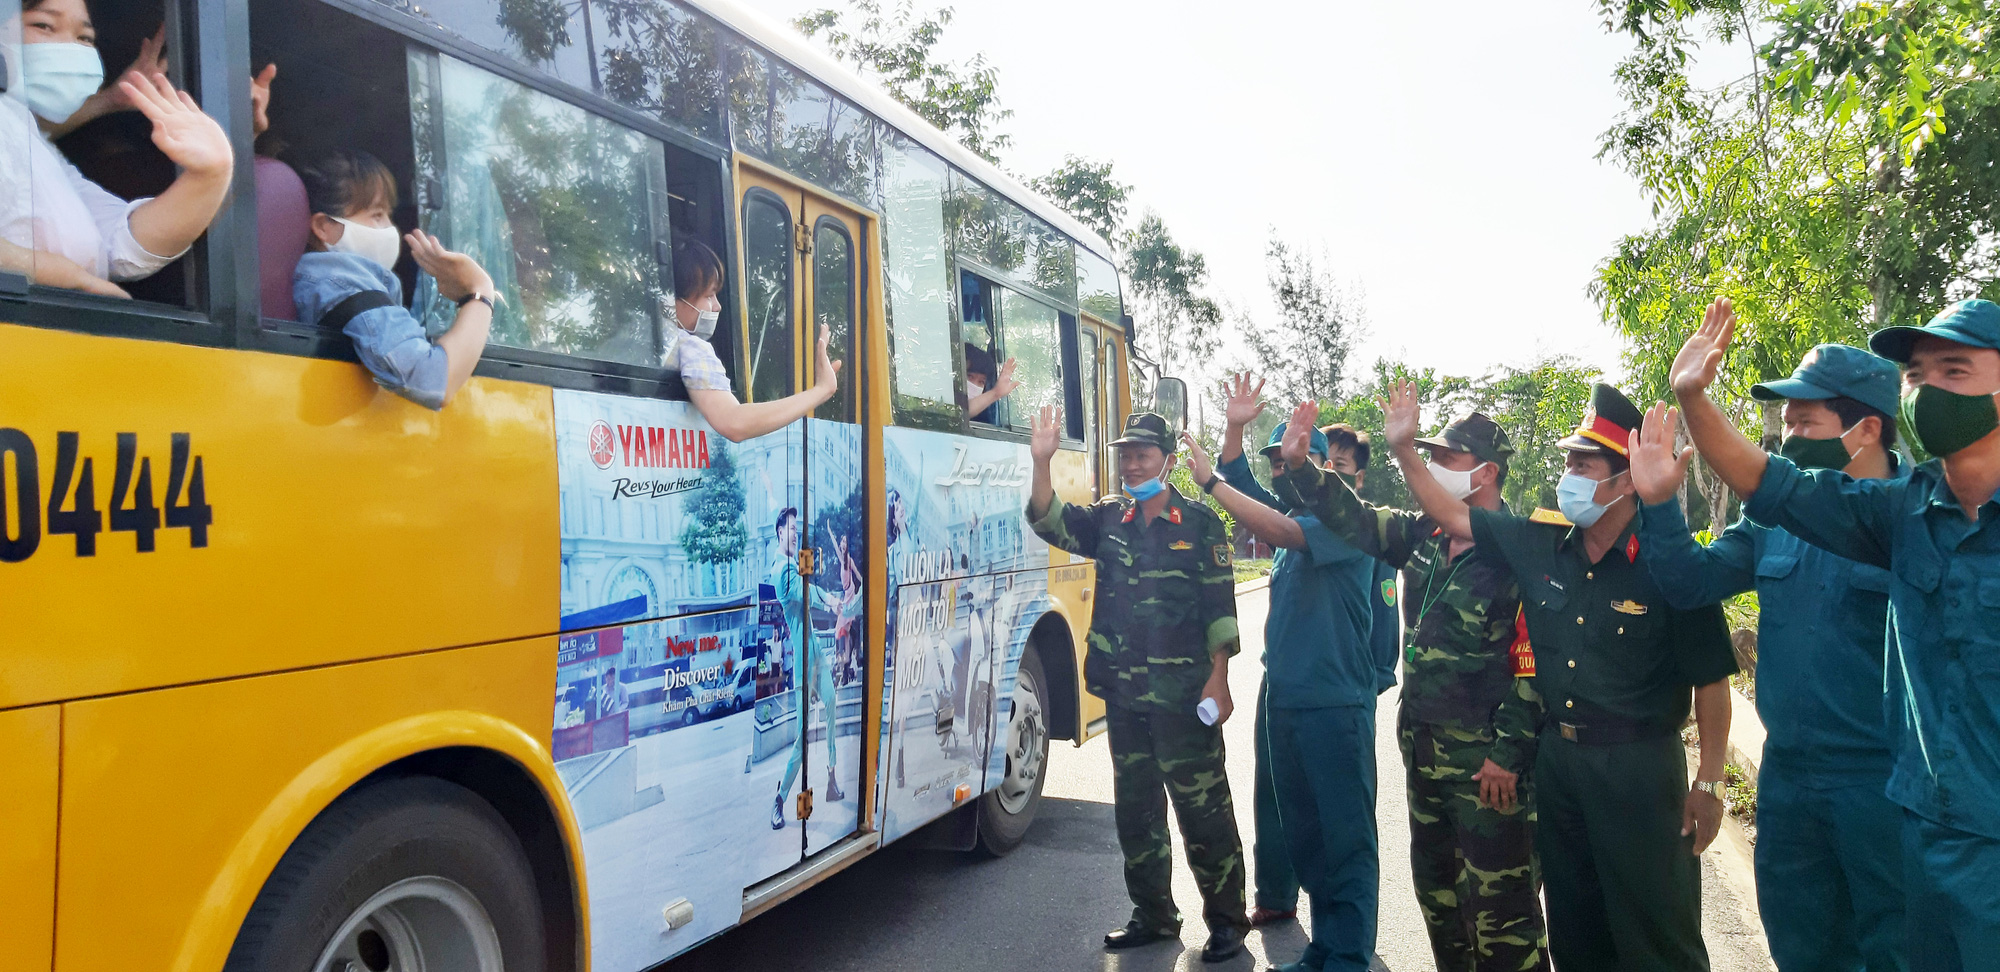 Residents wave goodbye to staff members and officers at a novel coronavirus disease (COVID-19) quarantine zone in Quang Nam Province, Vietnam from a bus before heading to the airport after completing their mandatory quarantine, June 12, 2020. Photo: Le Trung / Tuoi Tre